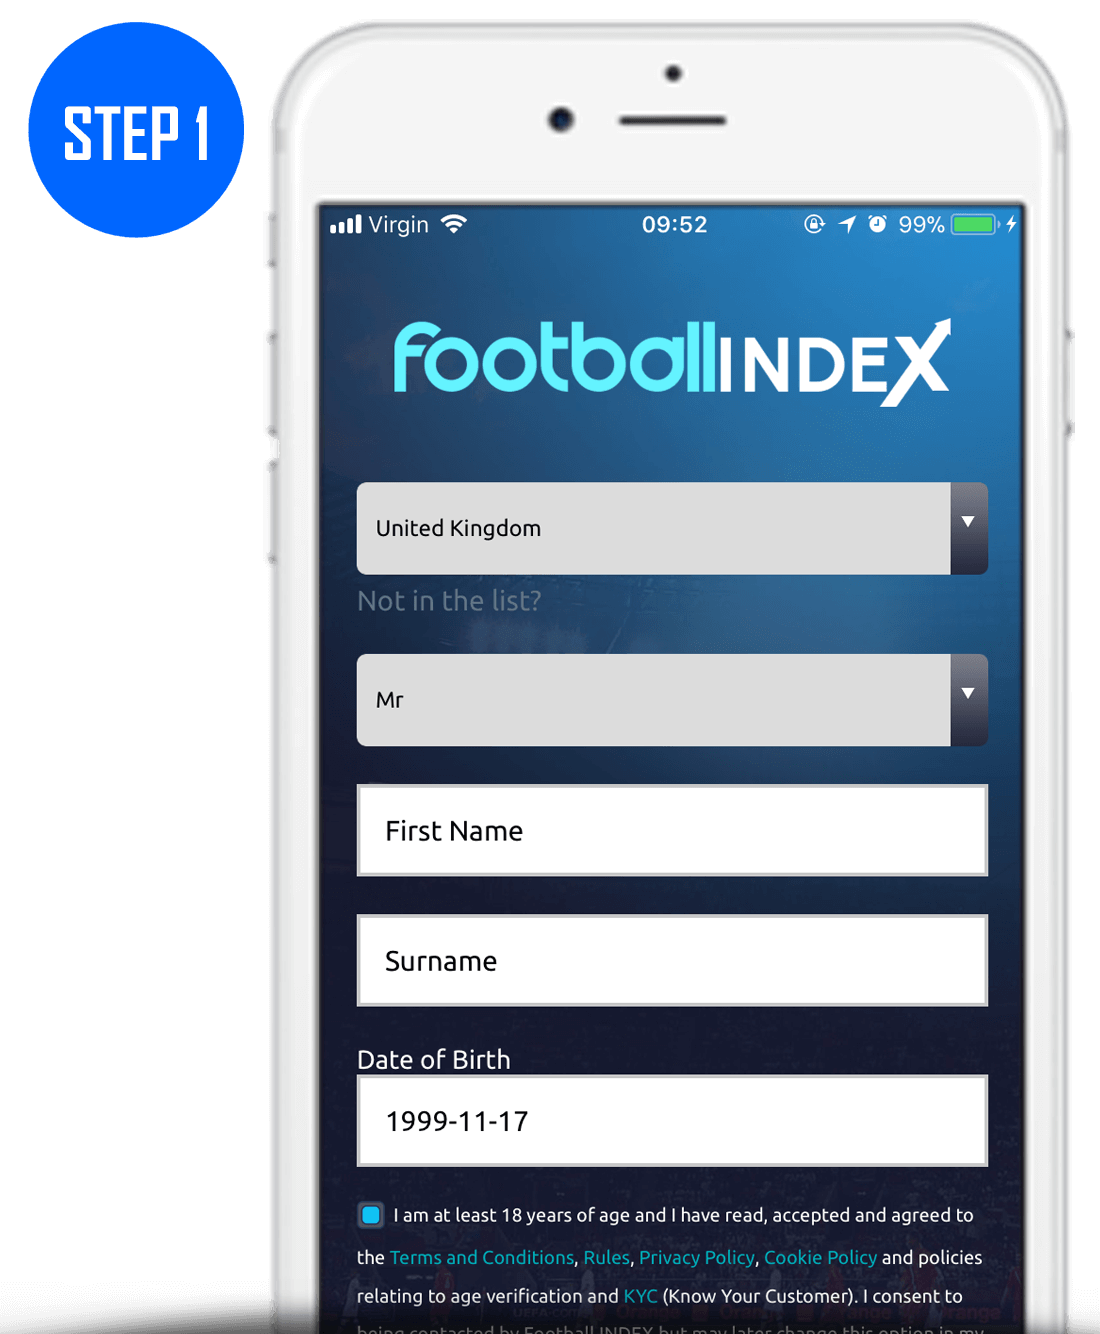 Football Index Sign Up Process Step 1